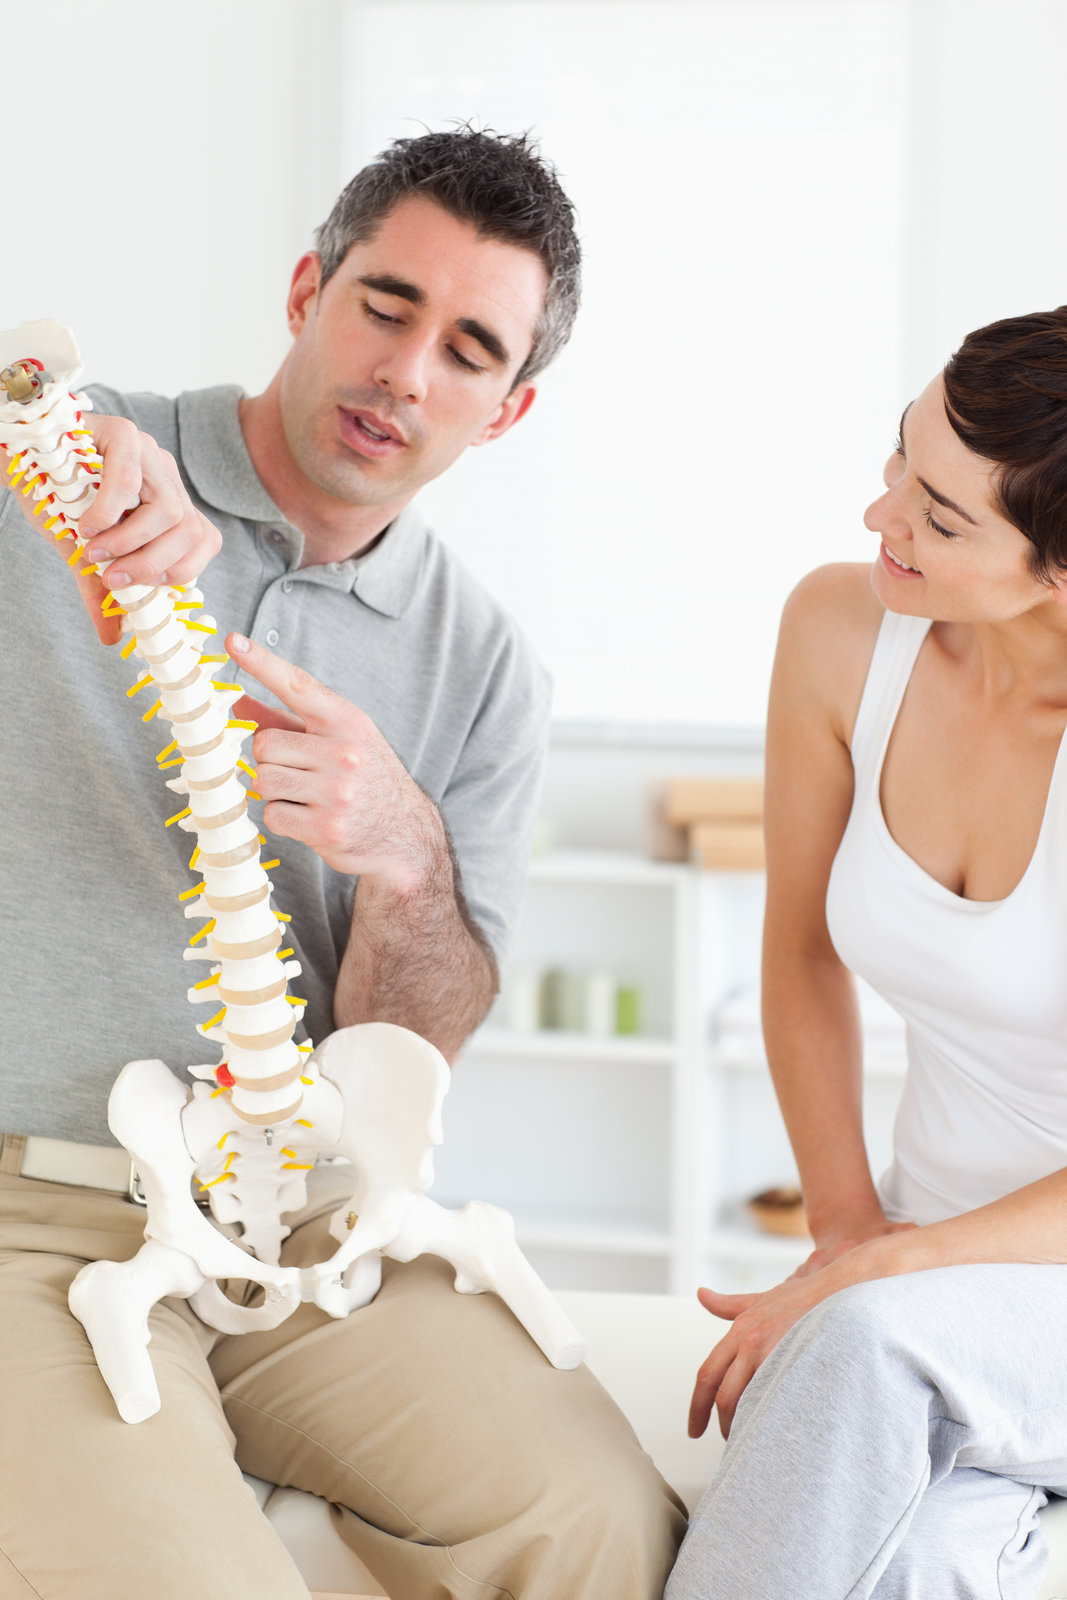 Despite what any practitioner has told you, a large percentage of chronic lower back pain can be helped